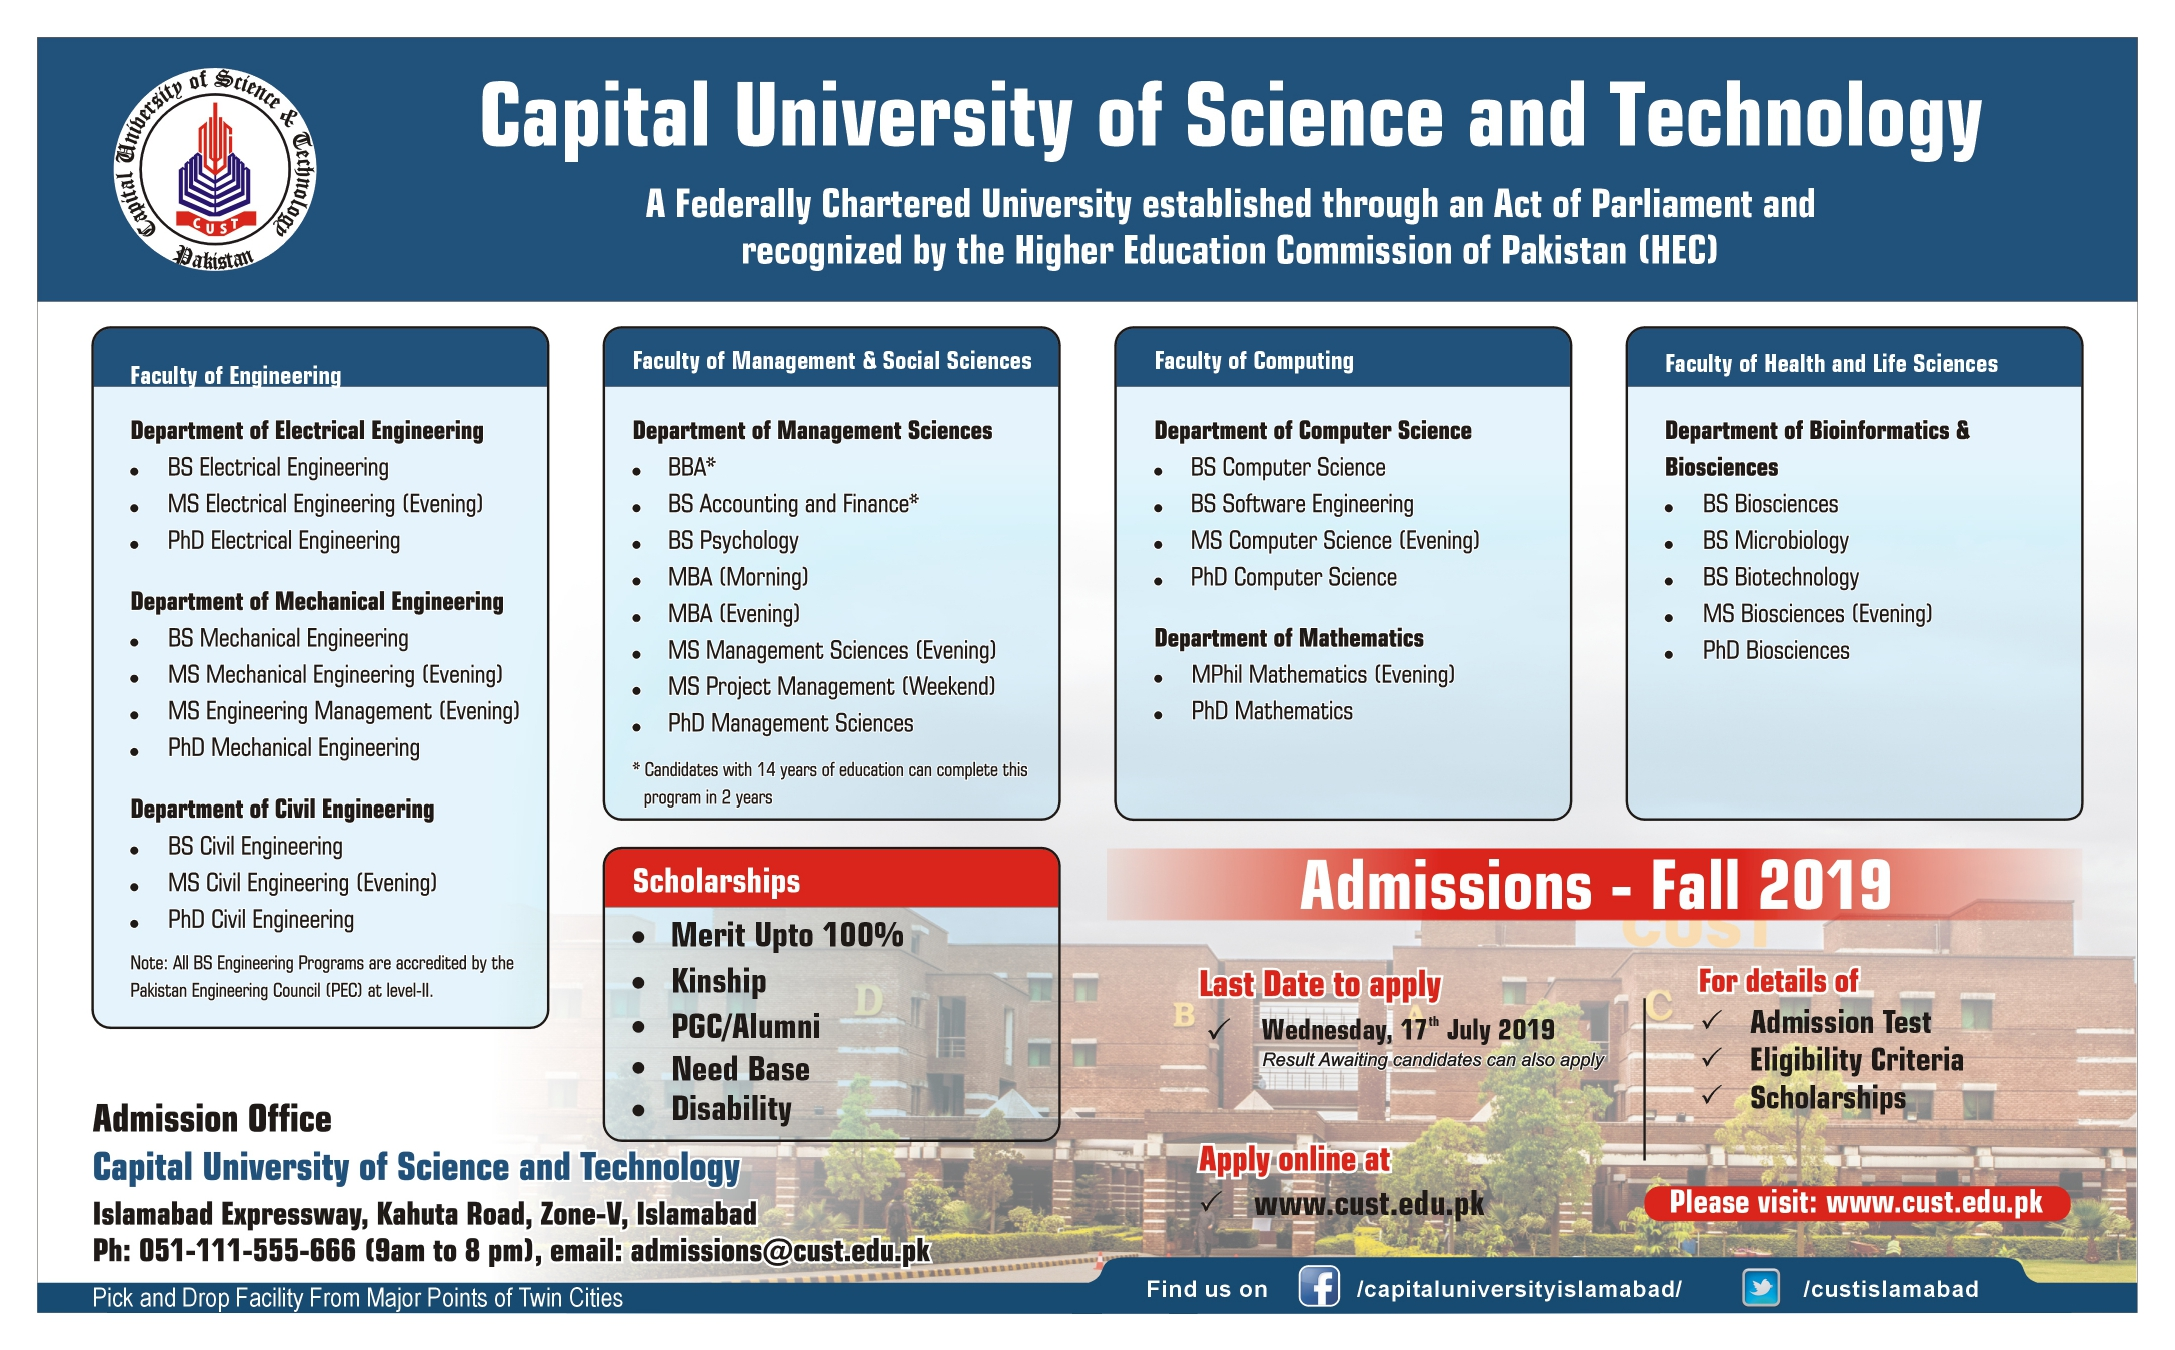 Admission Ad Fall 2019 - Capital University of Science